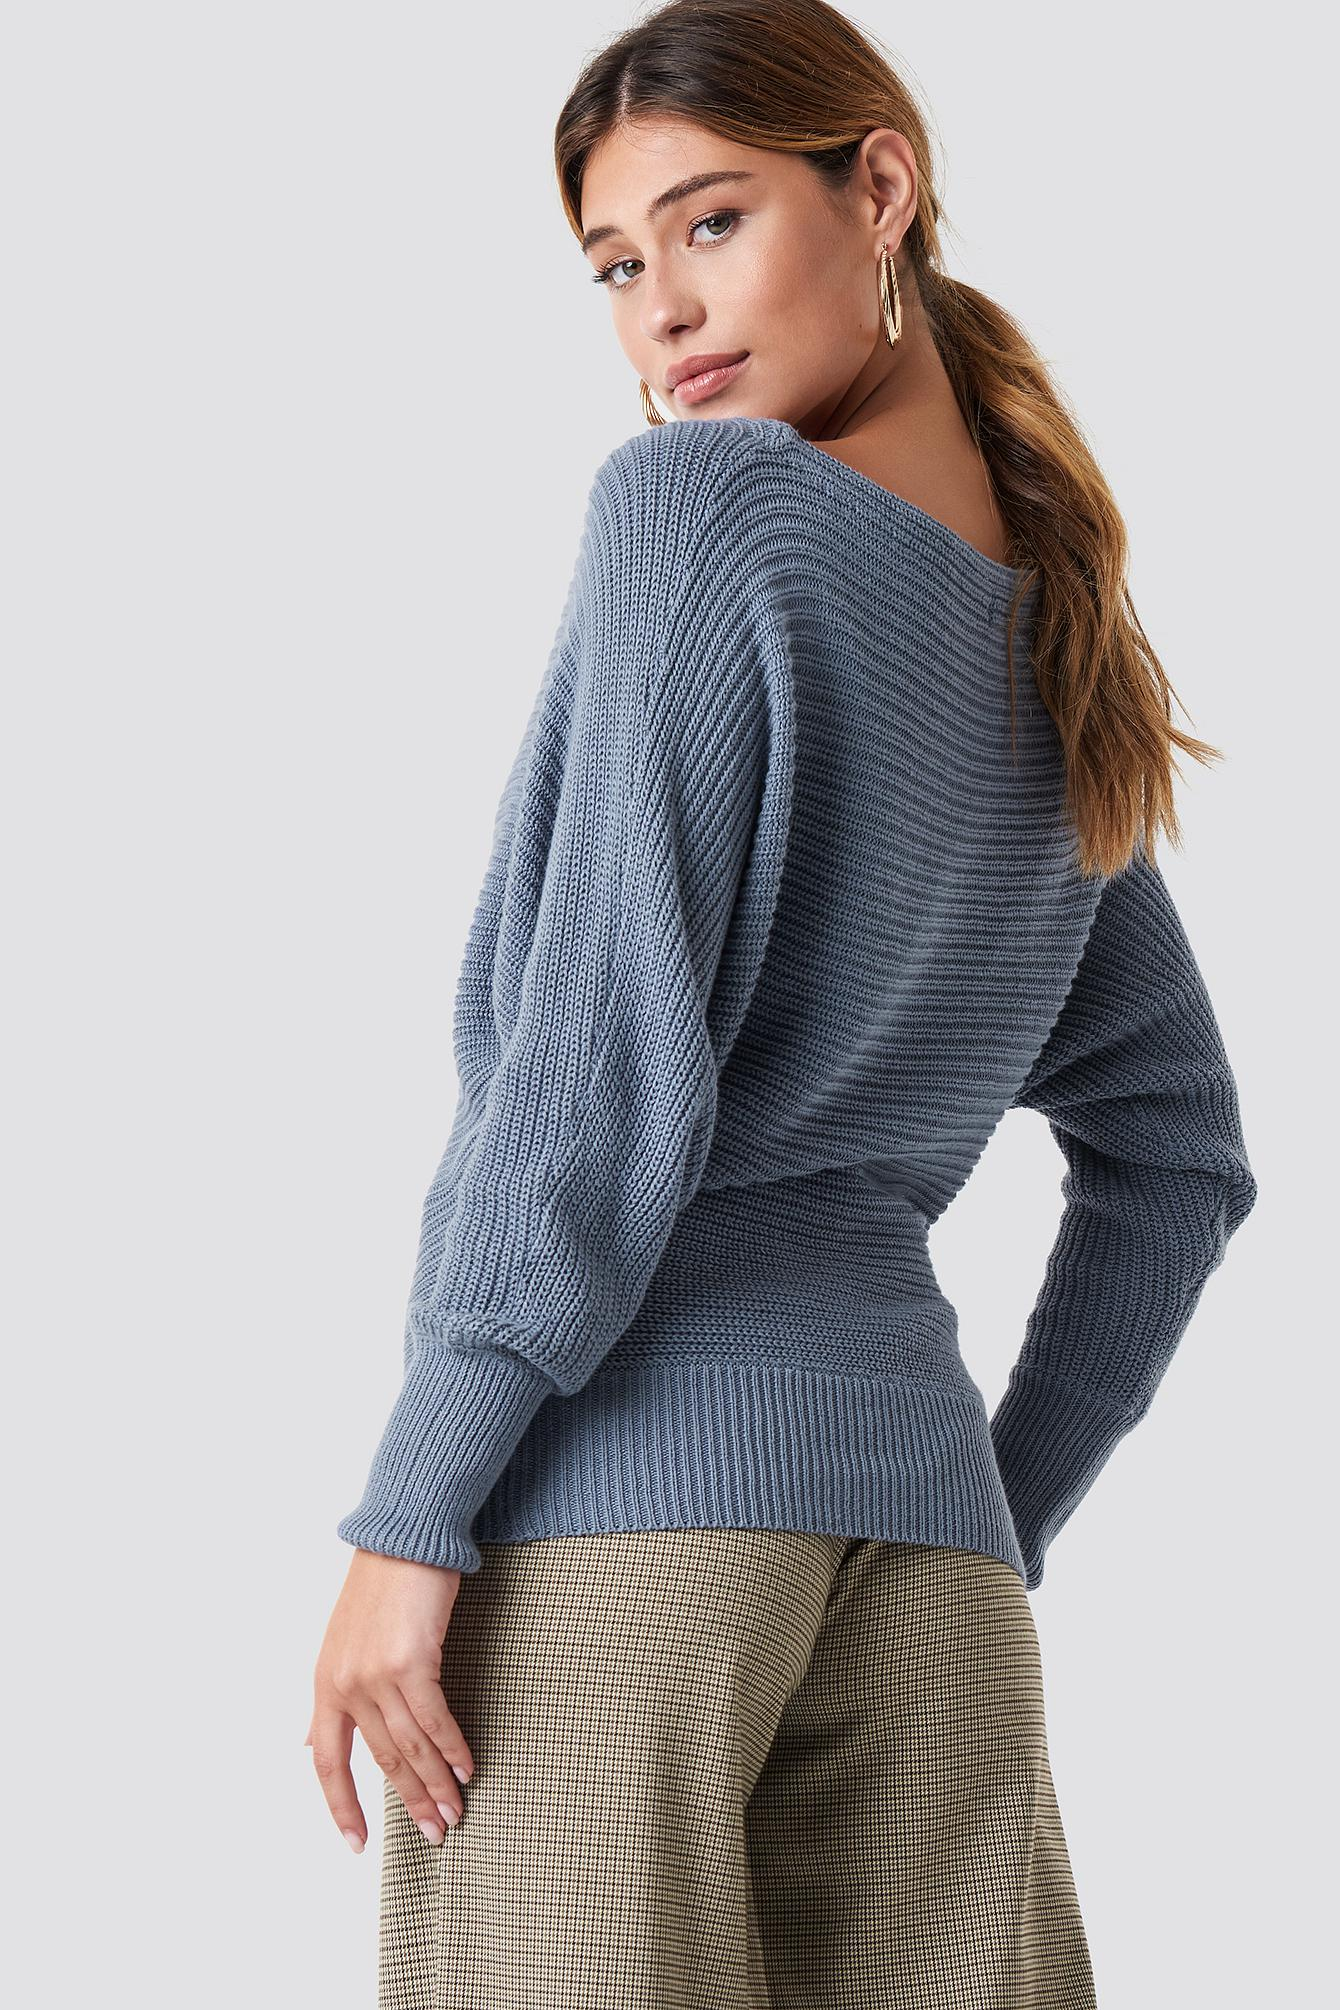 7c99009258 ... Off Shoulder Knitted Sweater Stone Blue - Lyst. View fullscreen